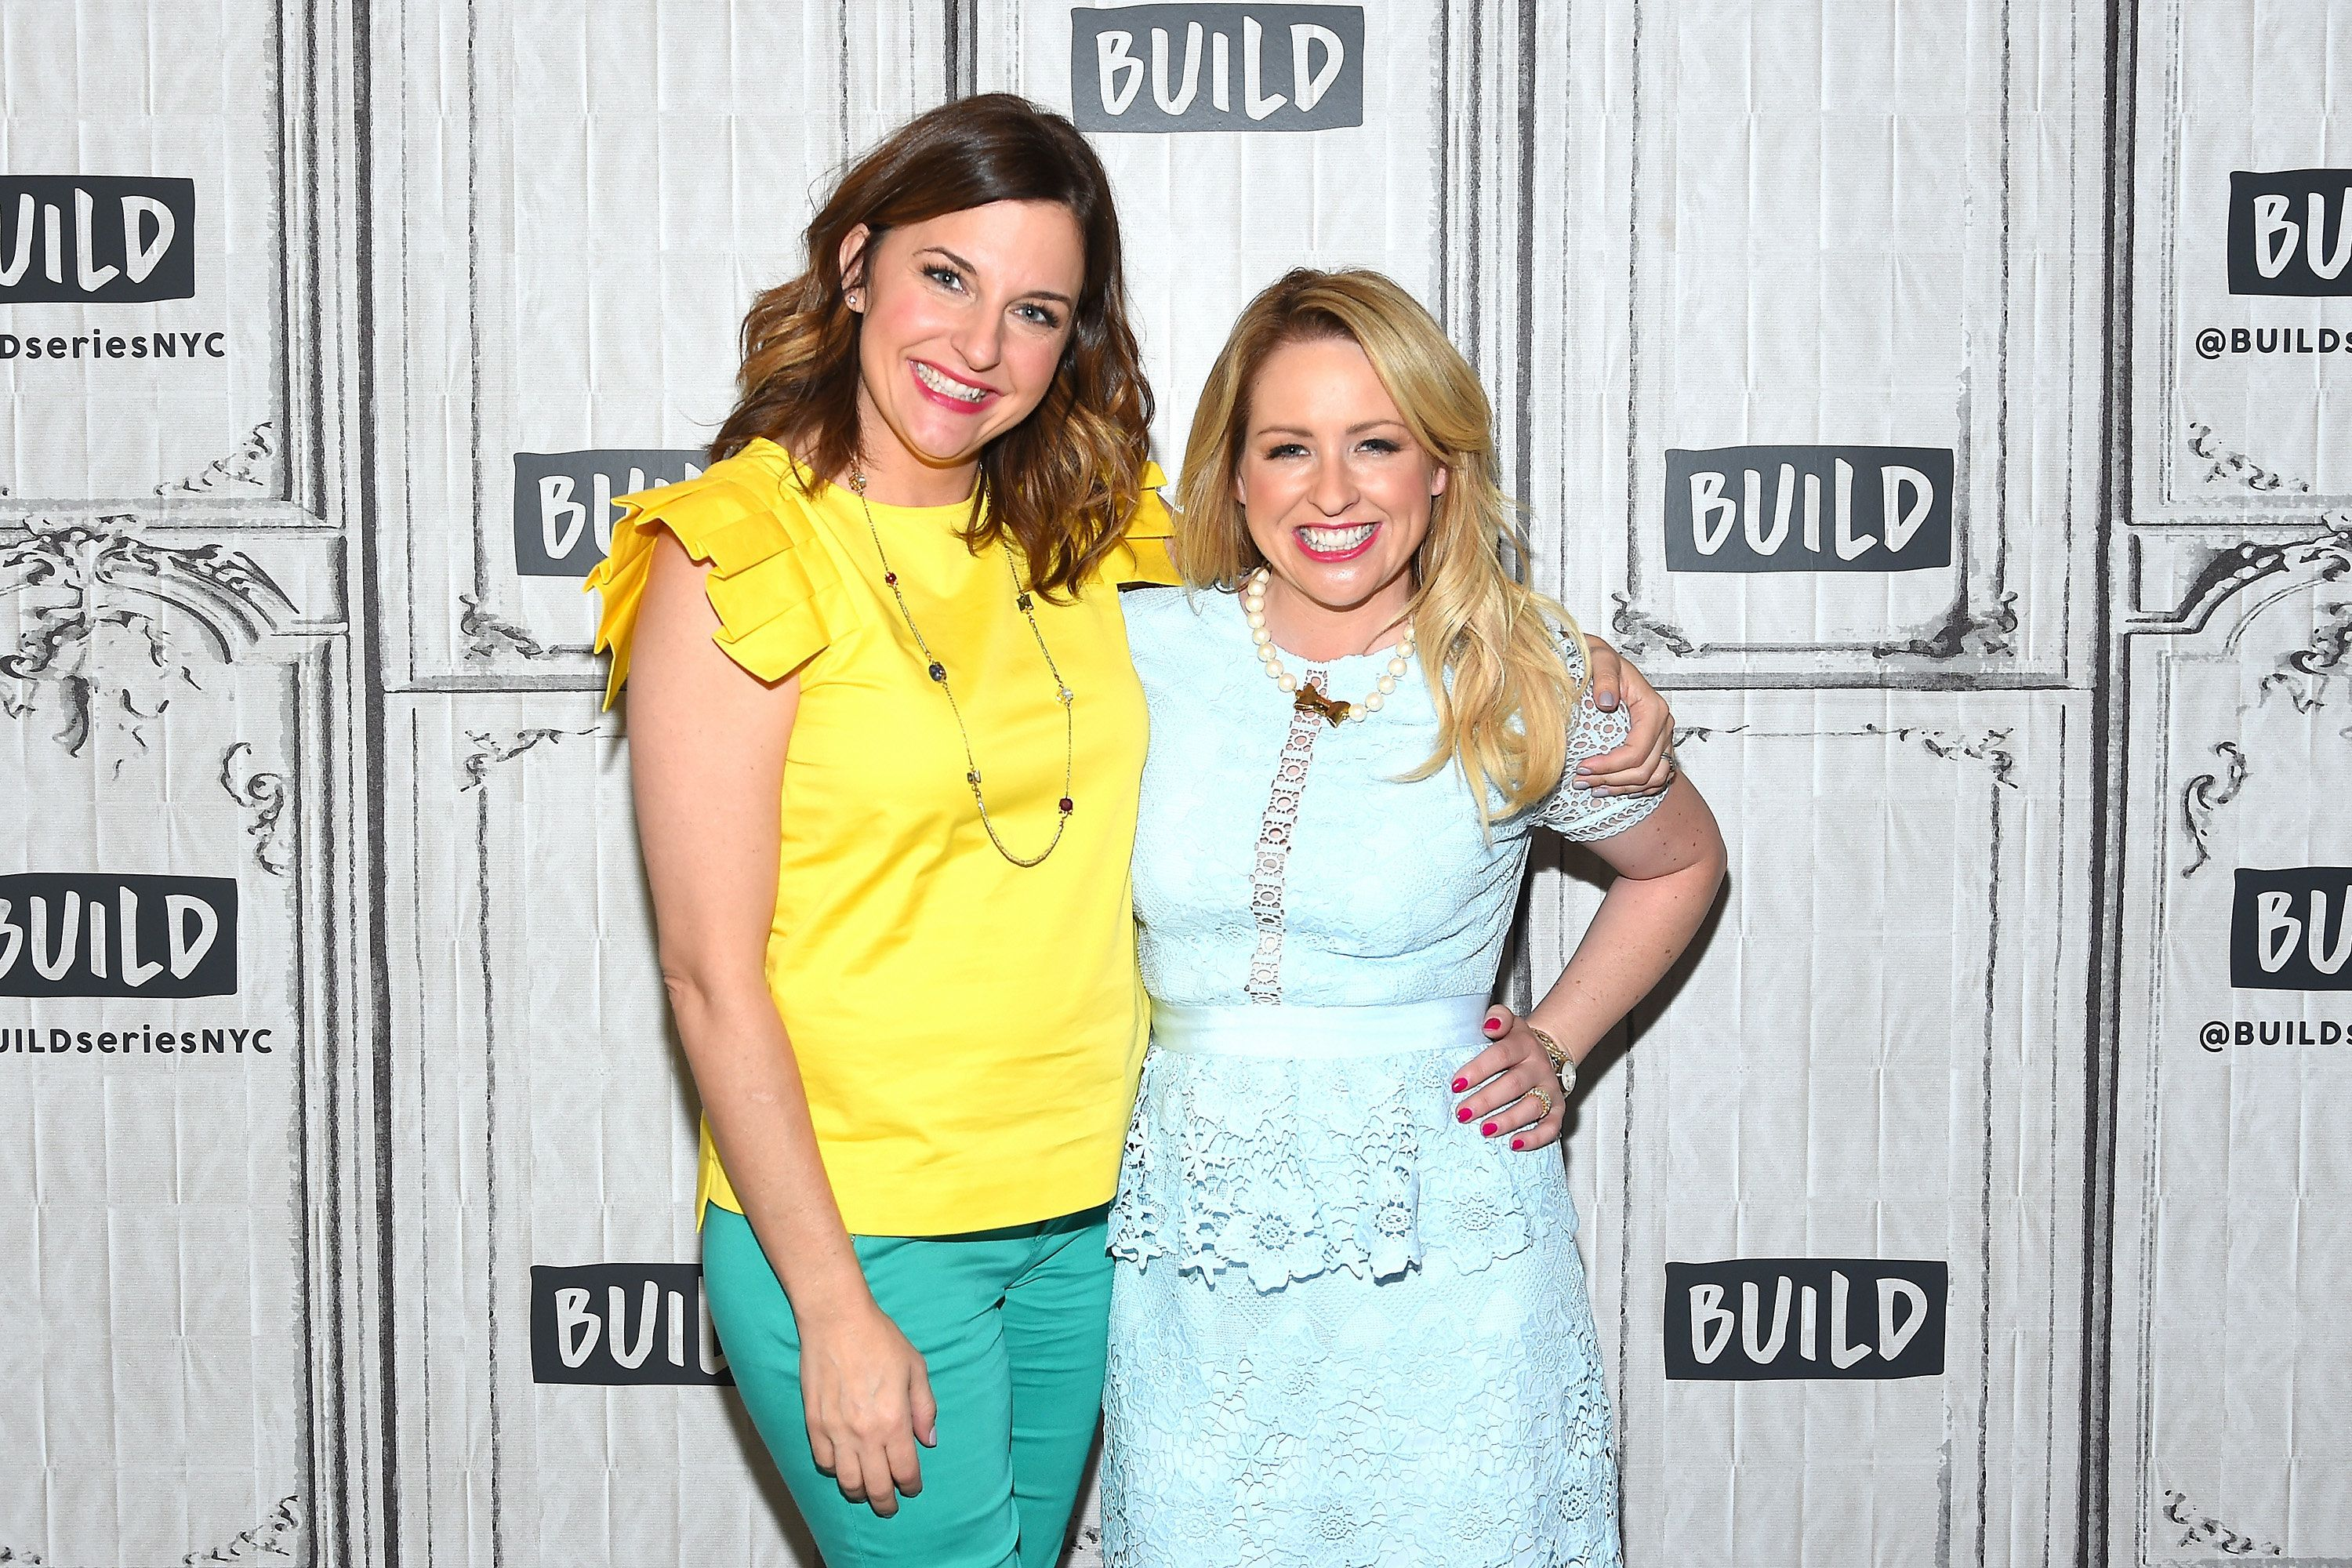 NEW YORK, NY - JULY 19:  Actresses Kristin Hensley (L) and Jen Smedley attend the Build Series to discuss their Summer Break Show Tour #IMOMSOHARD at Build Studio on July 19, 2017 in New York City.  (Photo by Ben Gabbe/Getty Images)